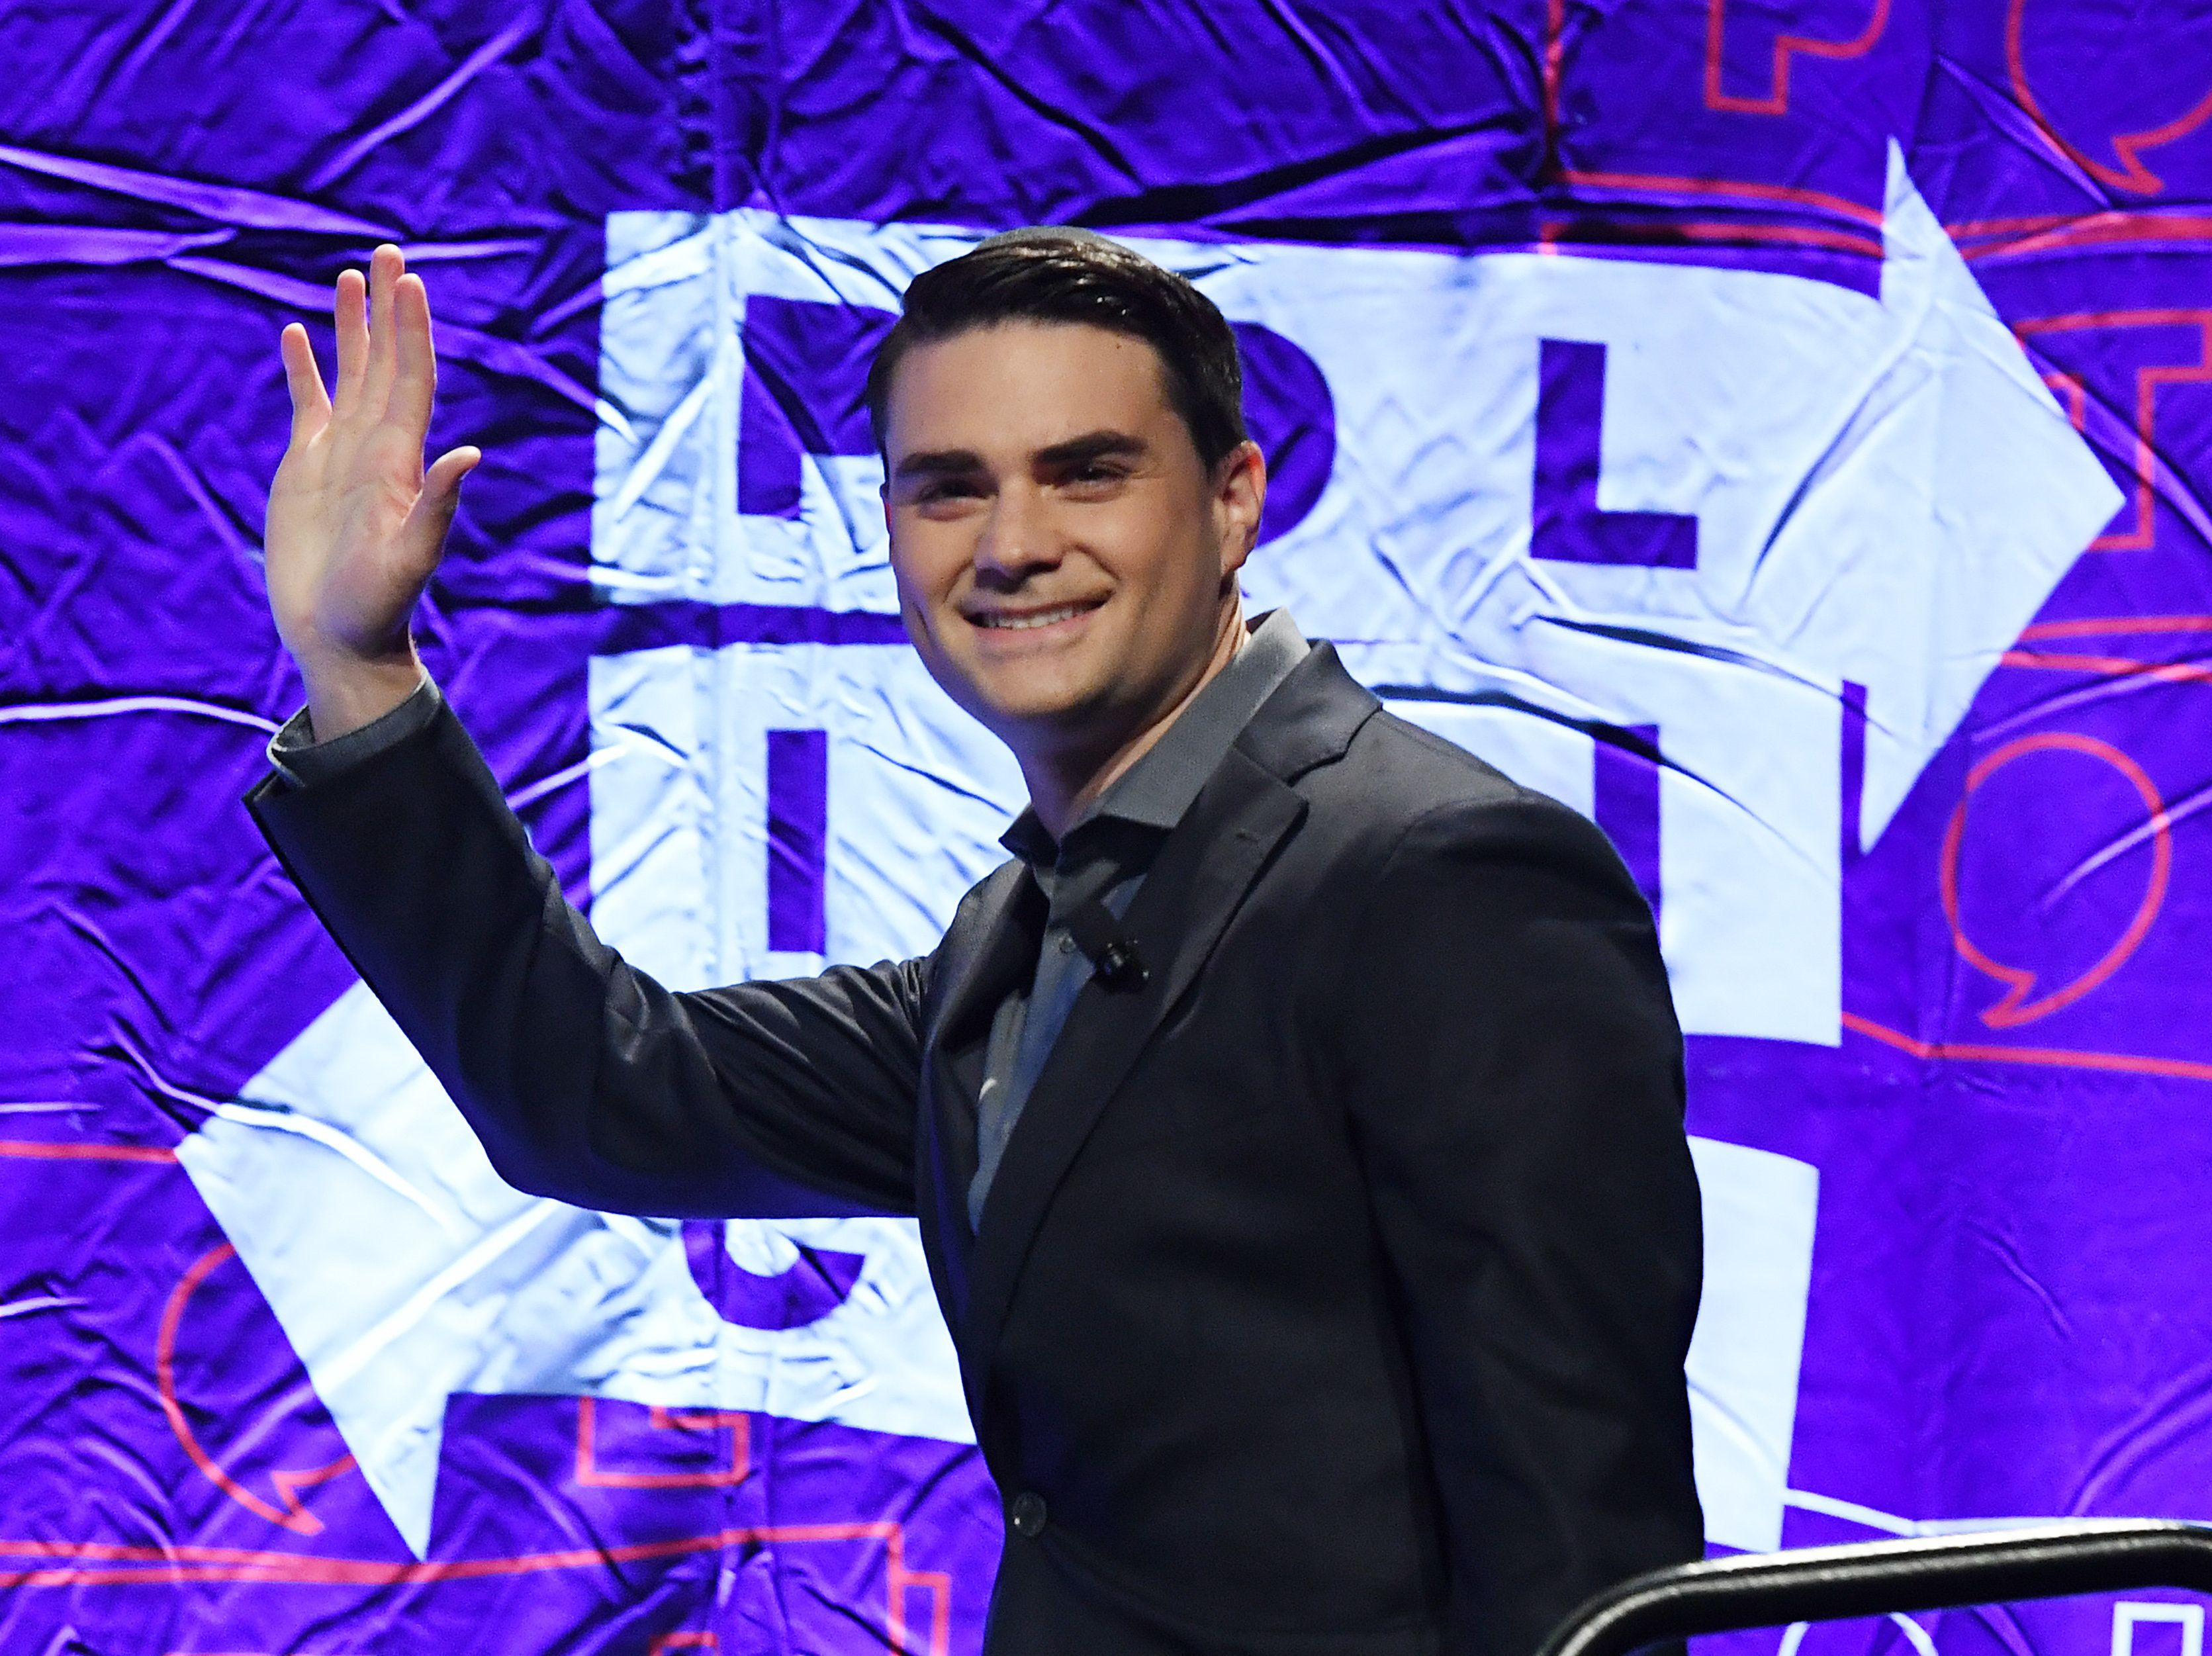 Conservative political commentator, writer and lawyer Ben Shapiro waves to the crowd as he arrives to speak at the 2018 Politicon in Los Angeles, California on October 21, 2018. - The two day event covers all things political with dozens of high profile political figures. (Photo by Mark RALSTON / AFP)        (Photo credit should read MARK RALSTON/AFP/Getty Images)